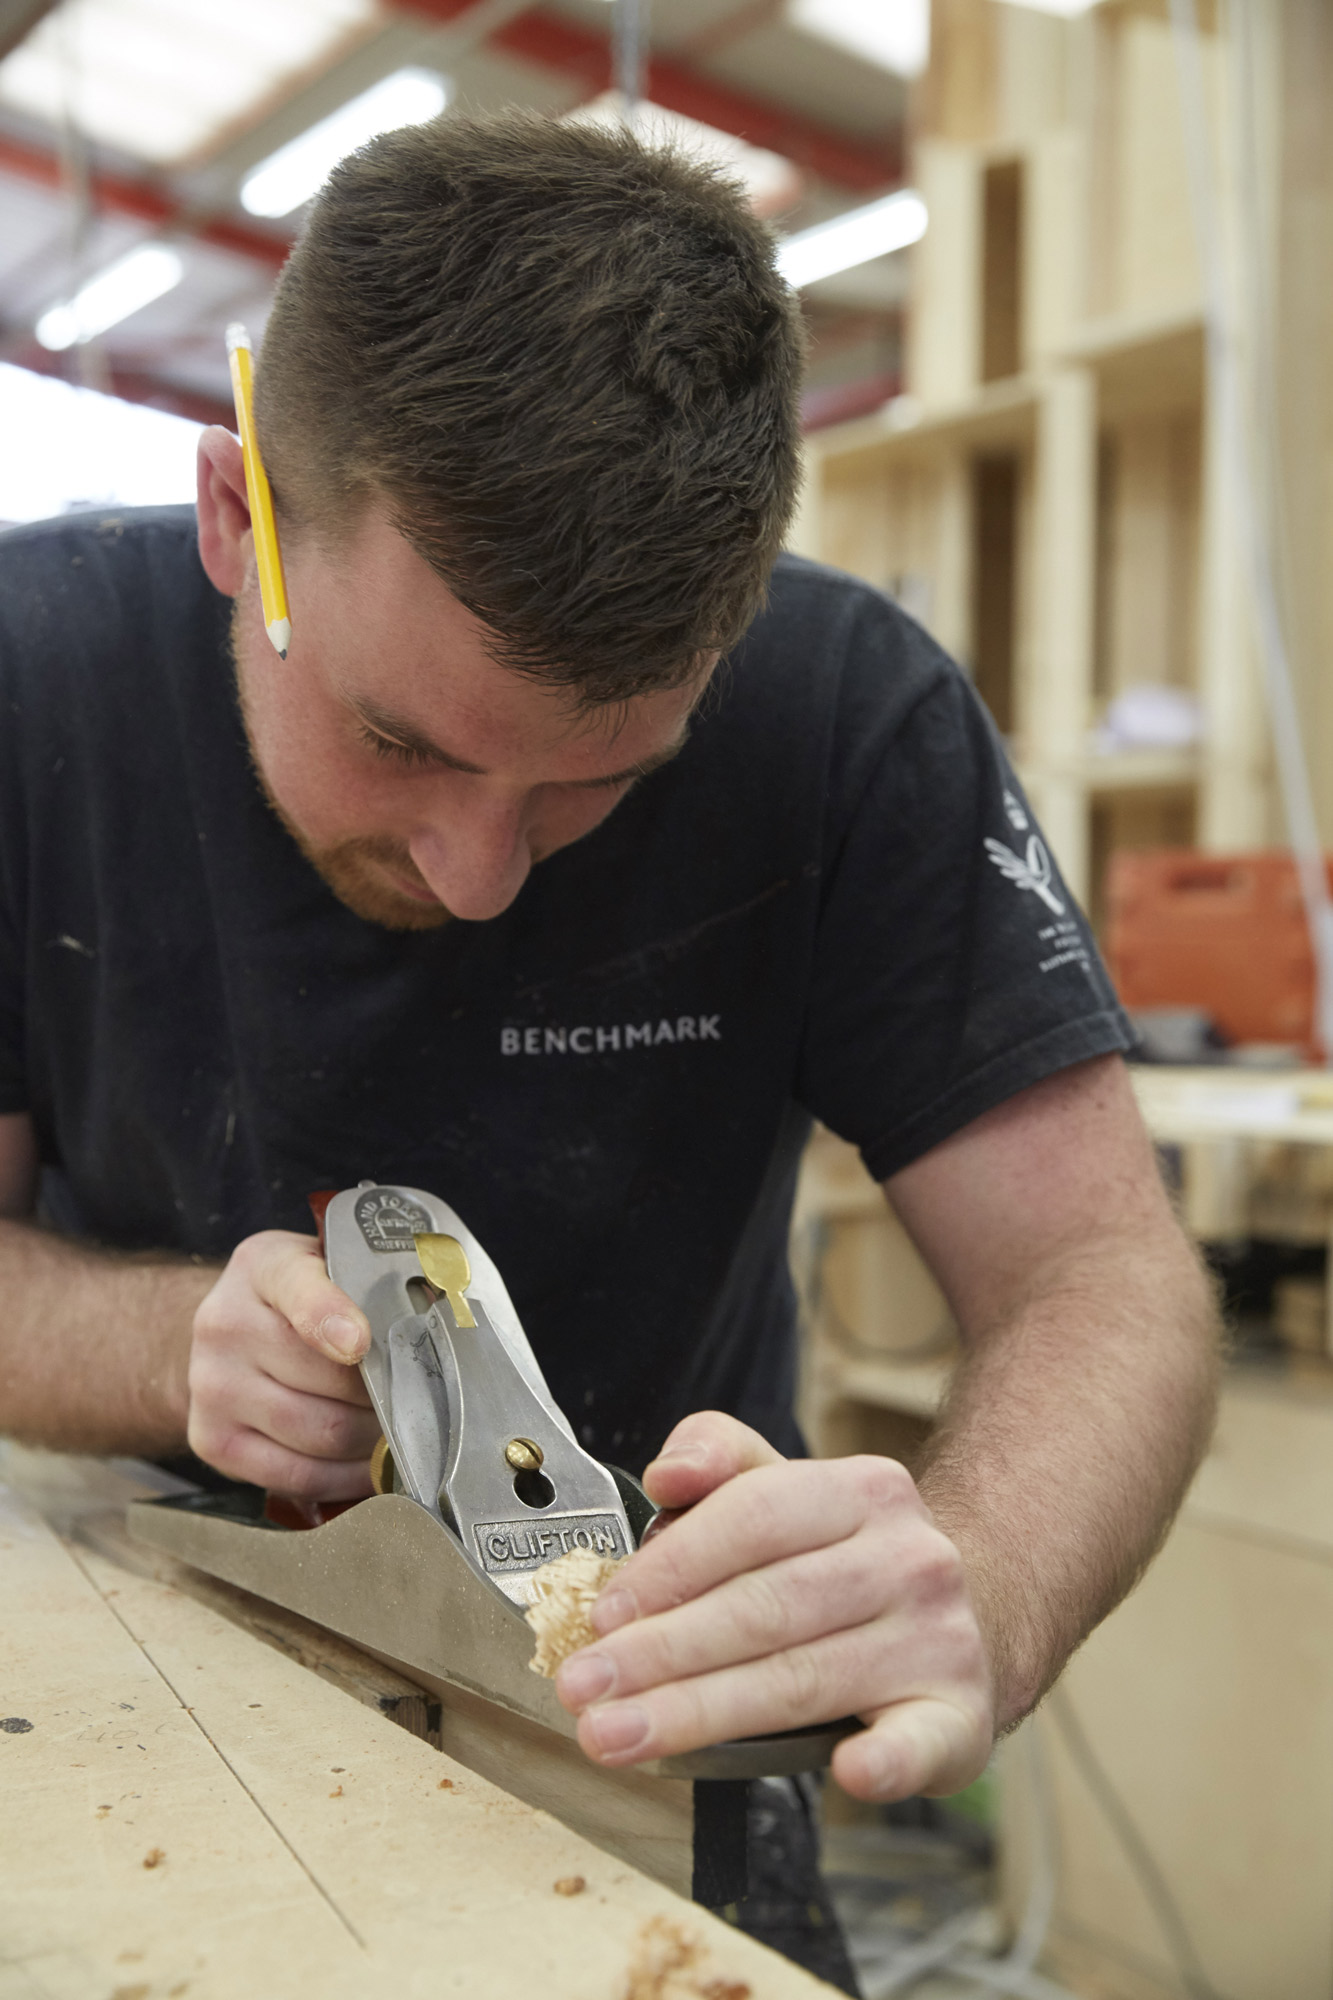 Too Good To Waste: Craftsman in the Benchmark workshop using a hand plane © Jon Cardwel